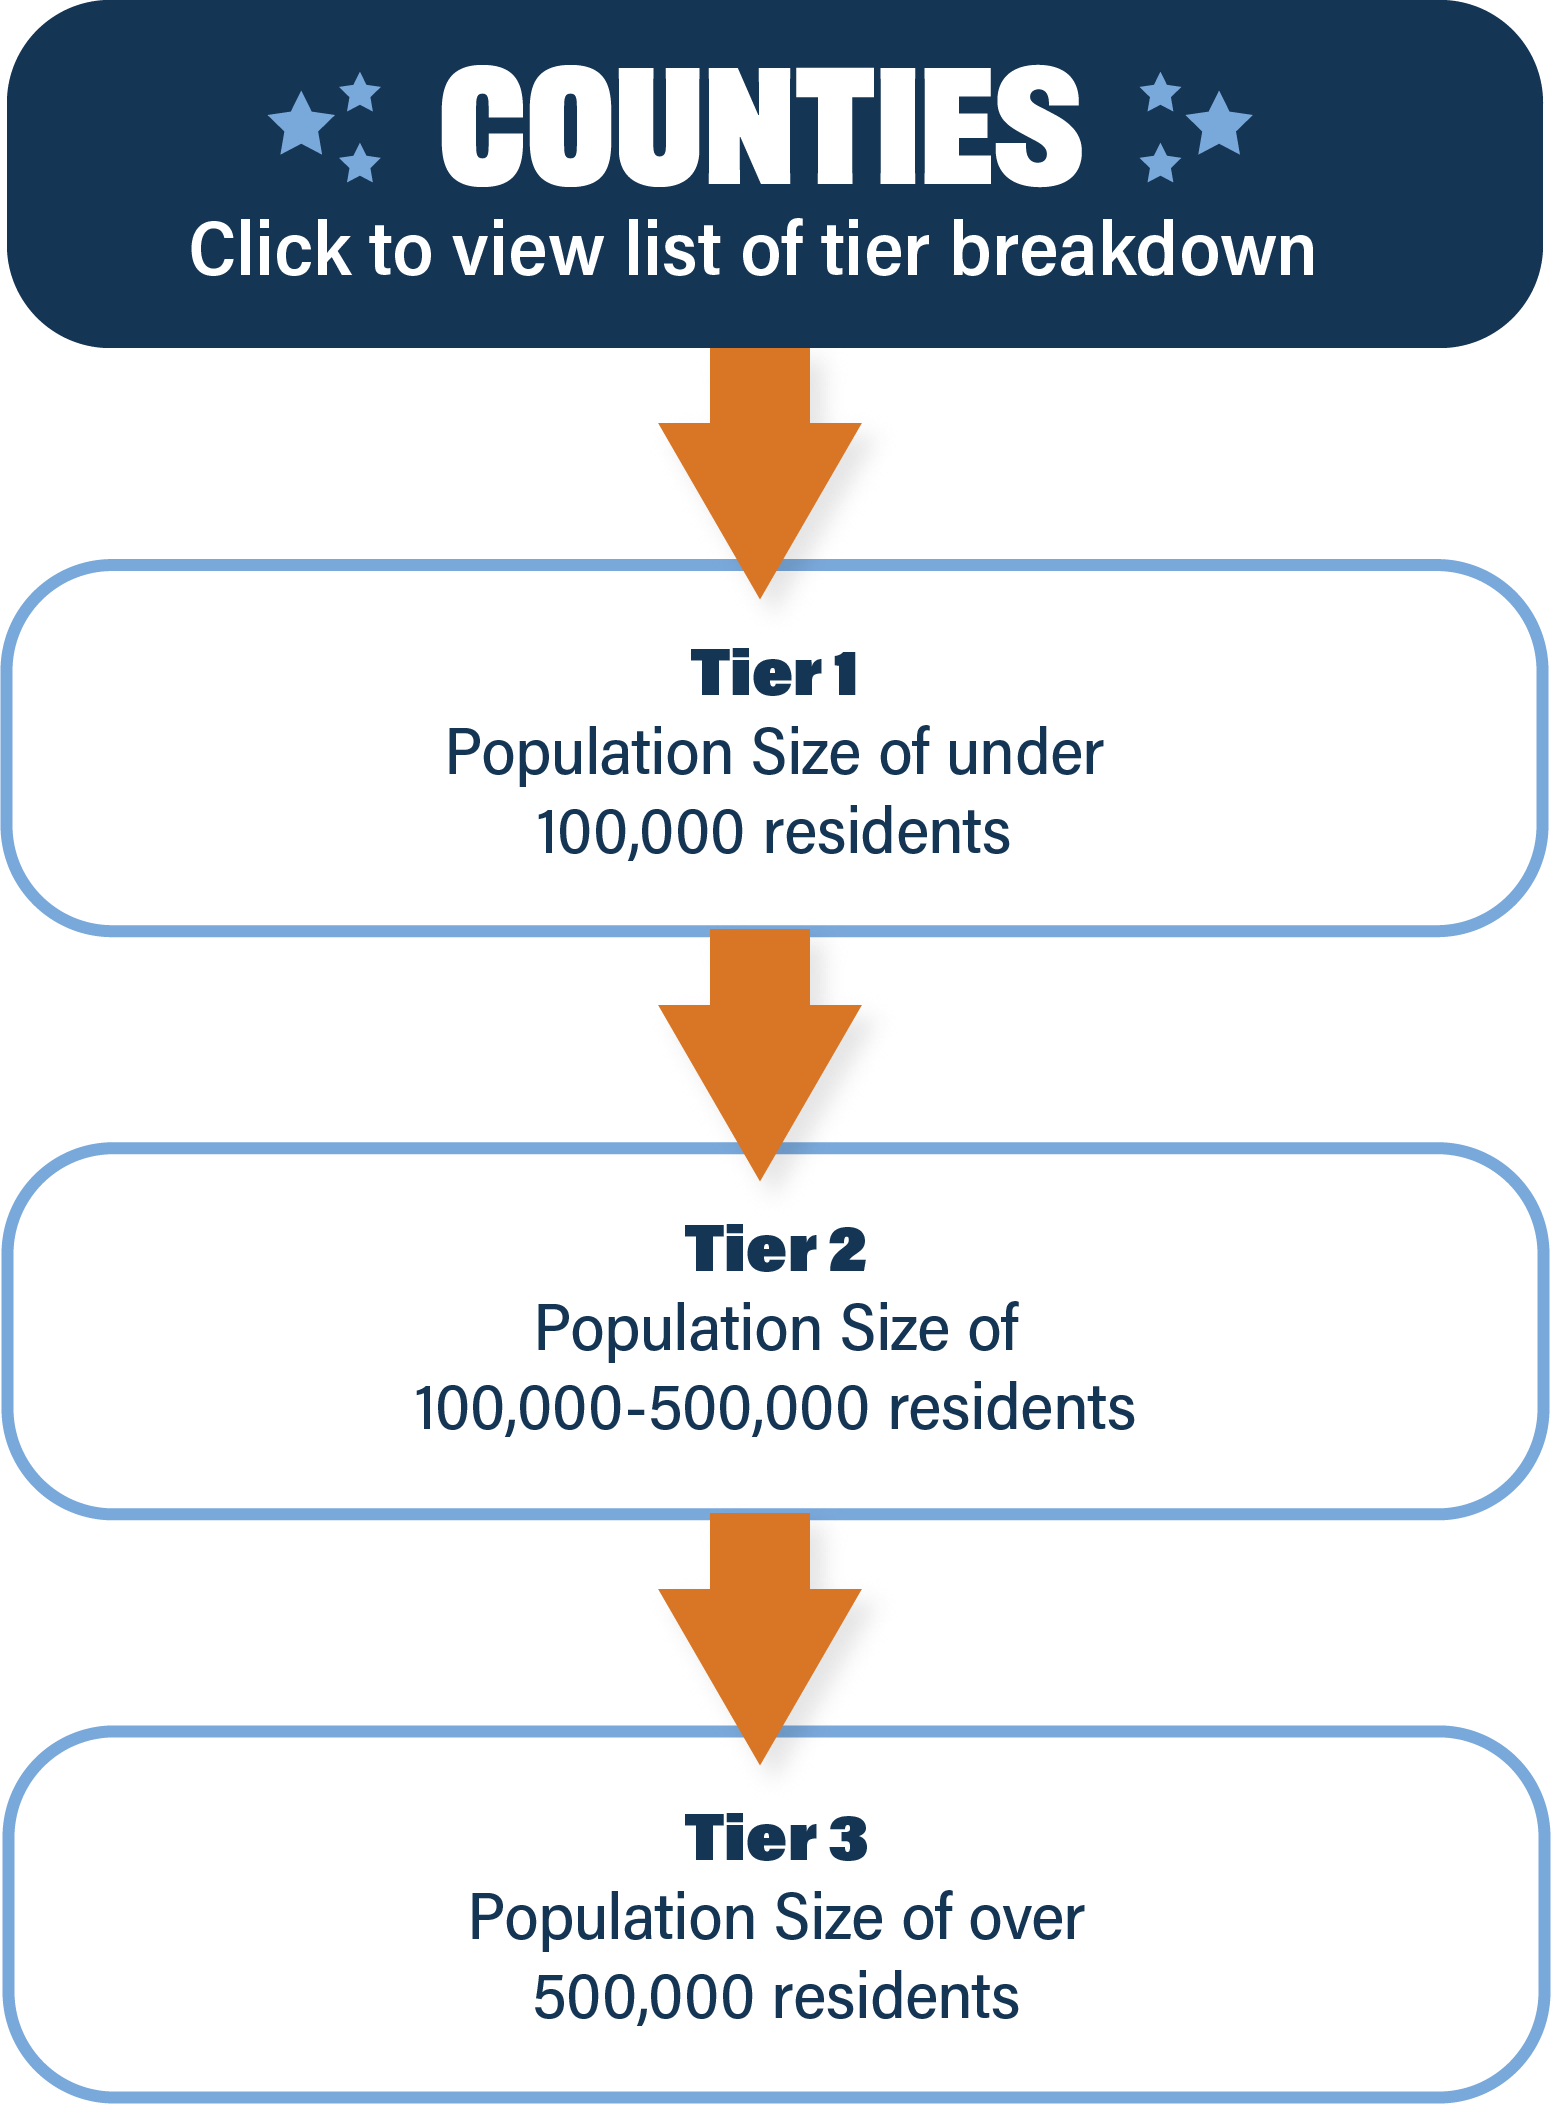 Counties: Click to view list of tier breakdownTier 1: Population Size of under 100,000 residentsTier 2: Population Size of 100,000-500,000 residentsTier 3: Population Size of over 500,000 residents